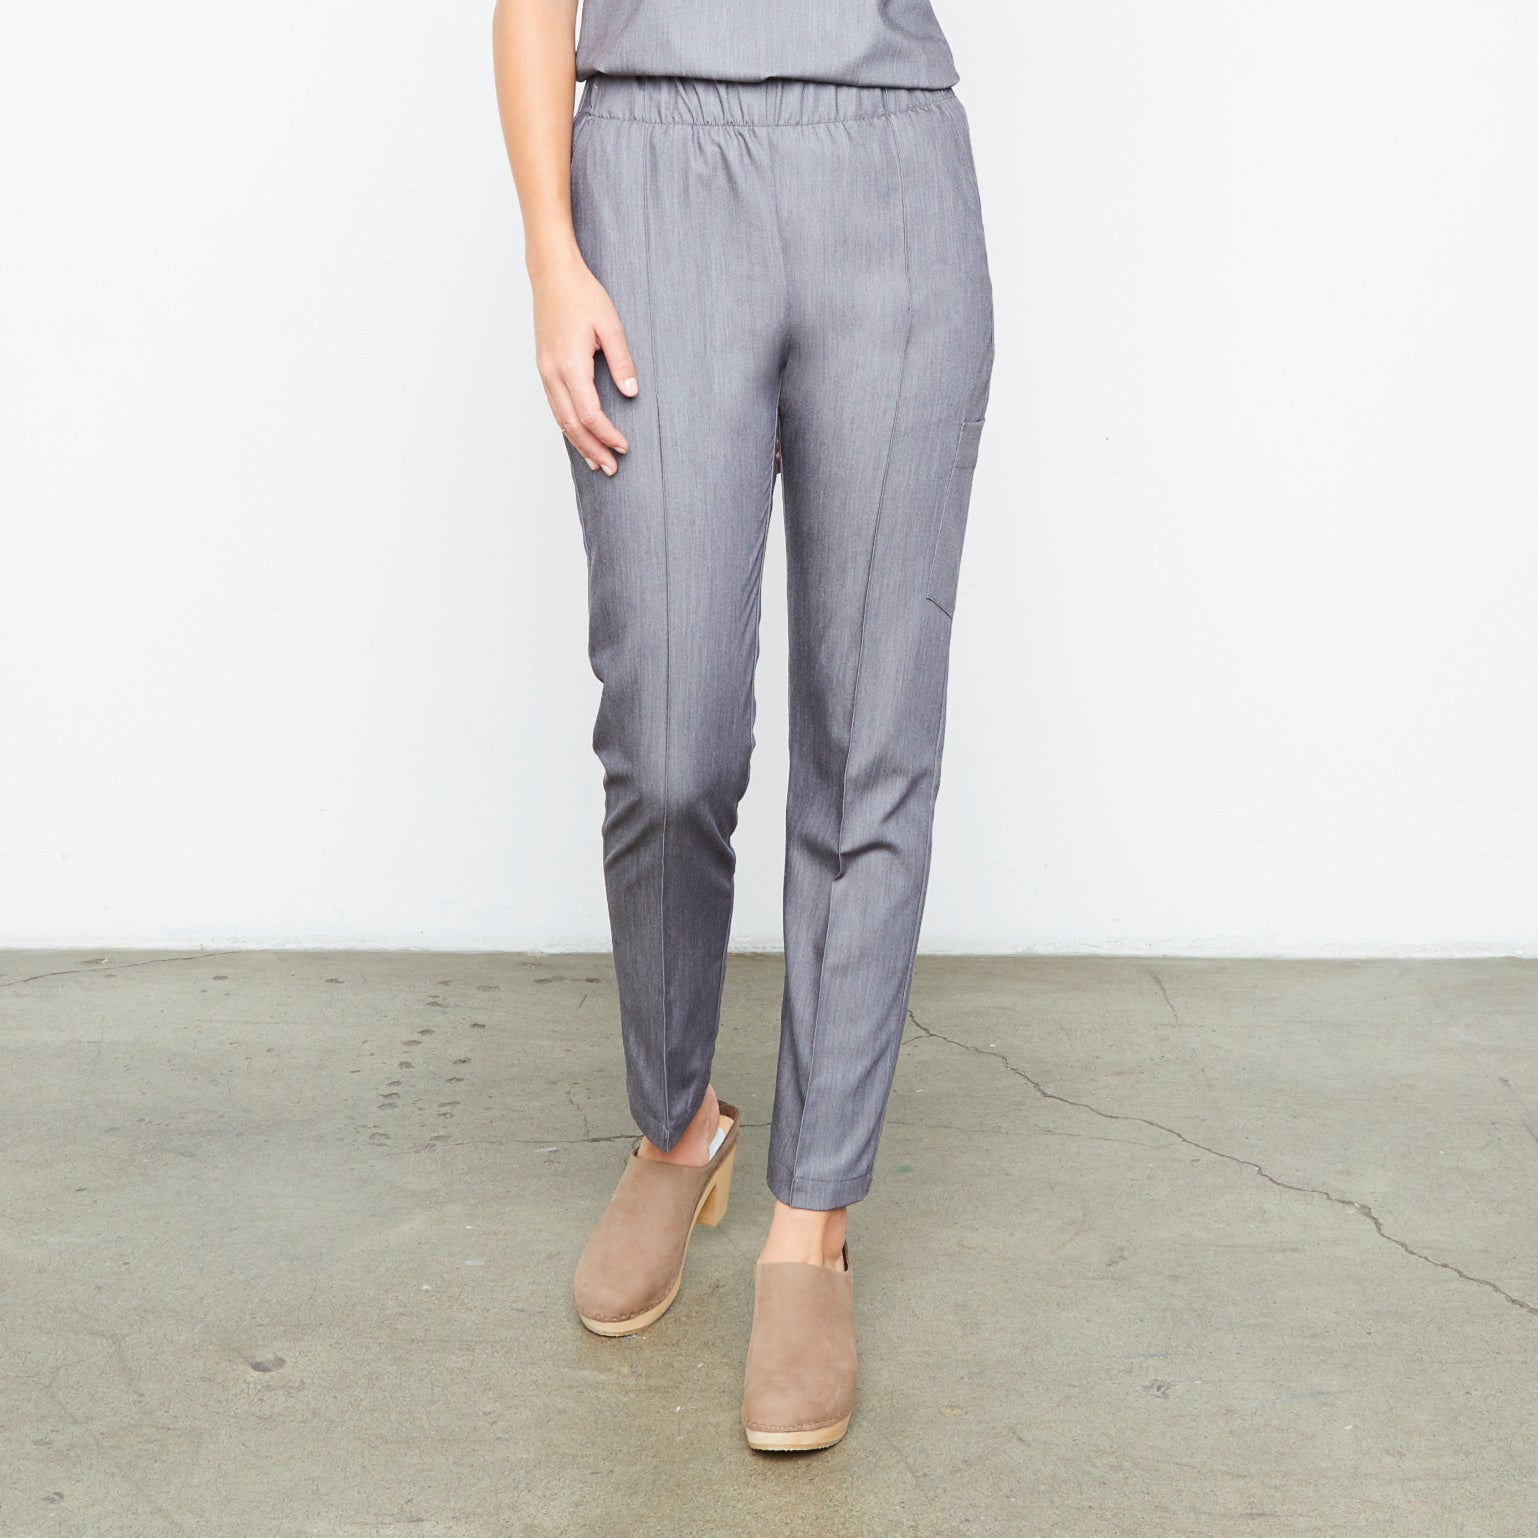 Harley Pant (Granite Smoothie) XXS | Fabled makes beautiful high quality scrub pants for women. Scrubs fashion for women doctors and female medical workers.